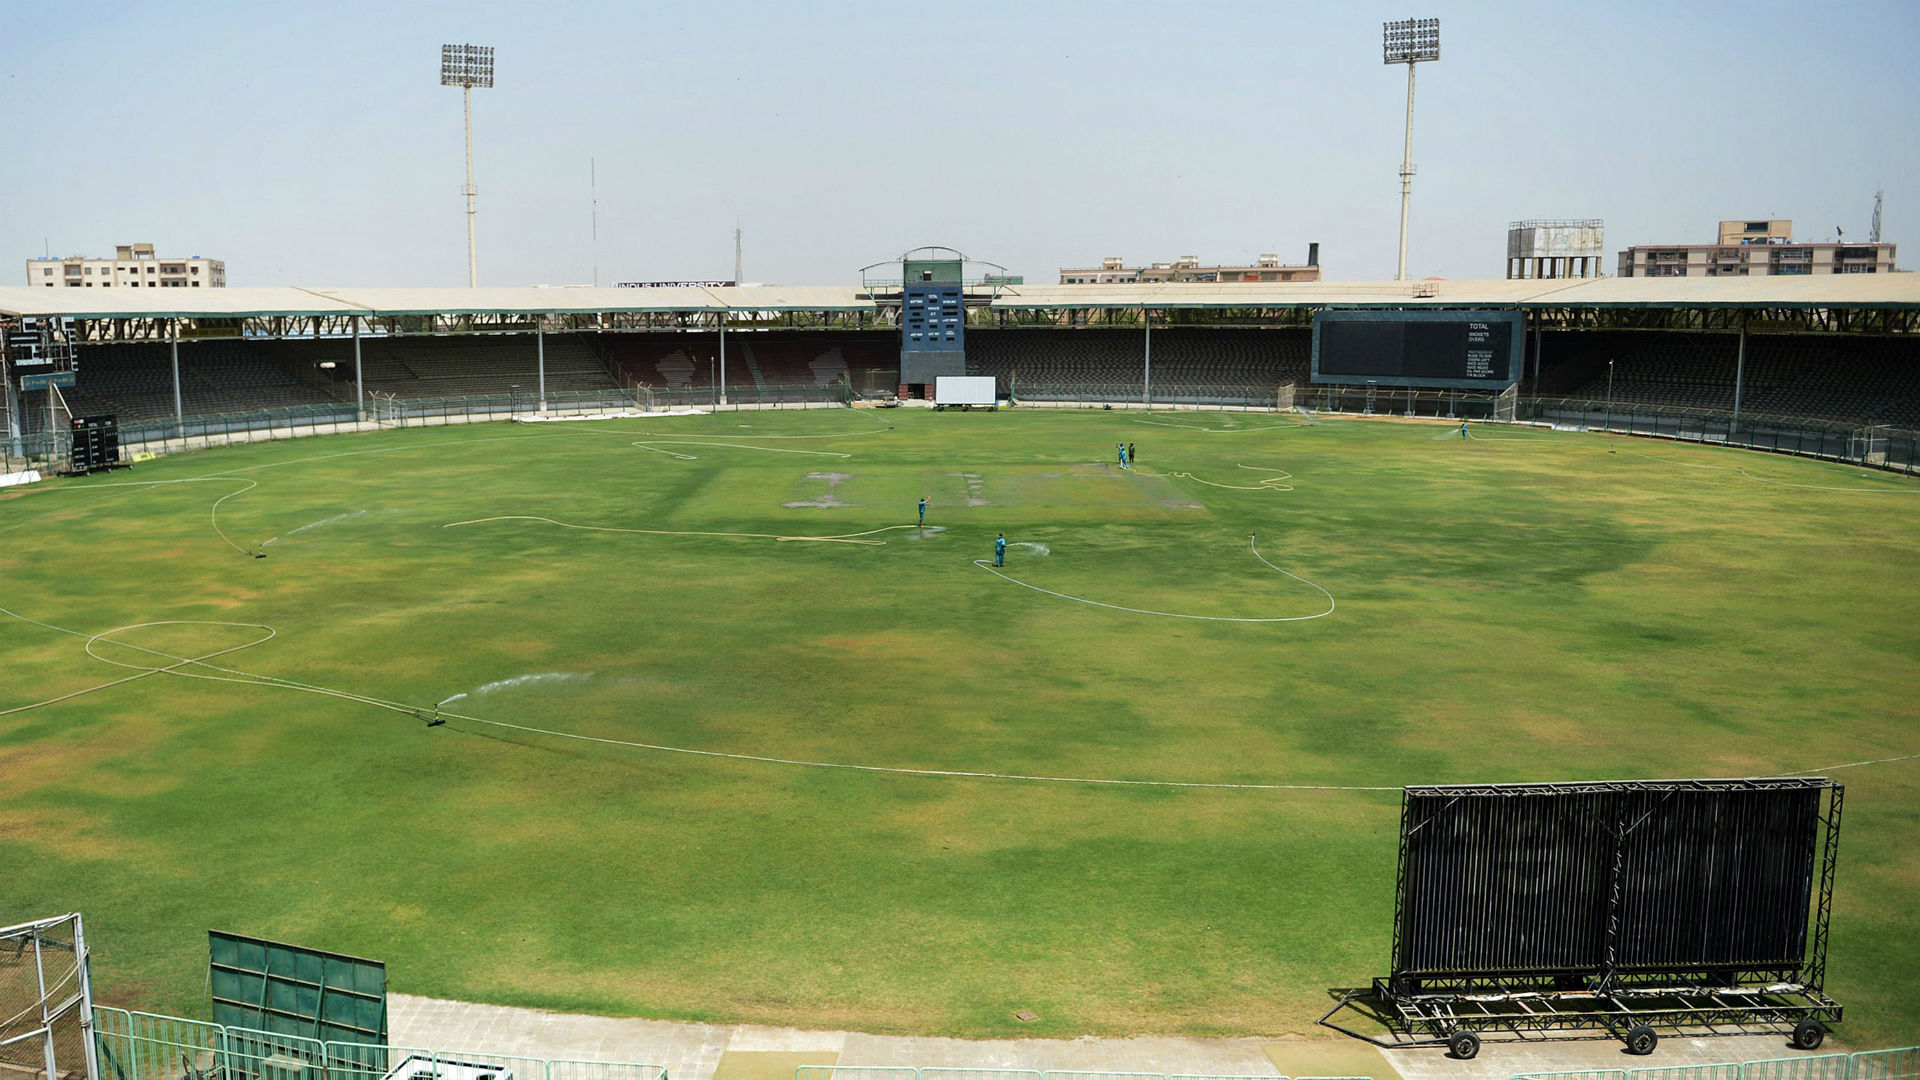 gaddafistadium - CROPPED